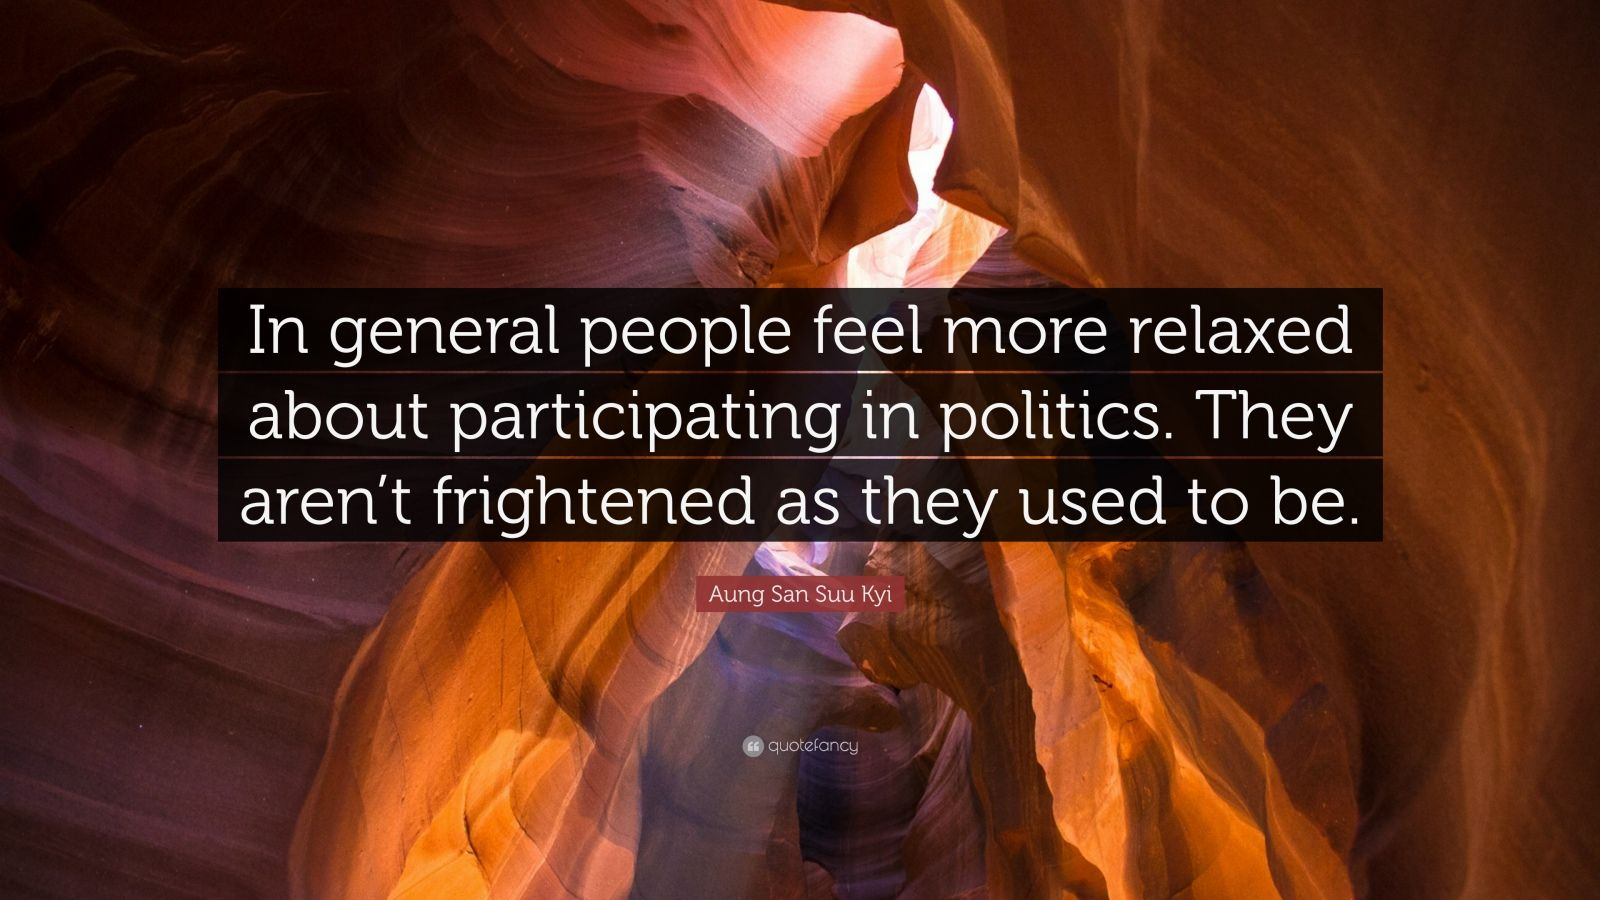 """Aung San Suu Kyi Quote: """"In general people feel more relaxed about participating in politics. They aren't frightened as they used to be."""""""